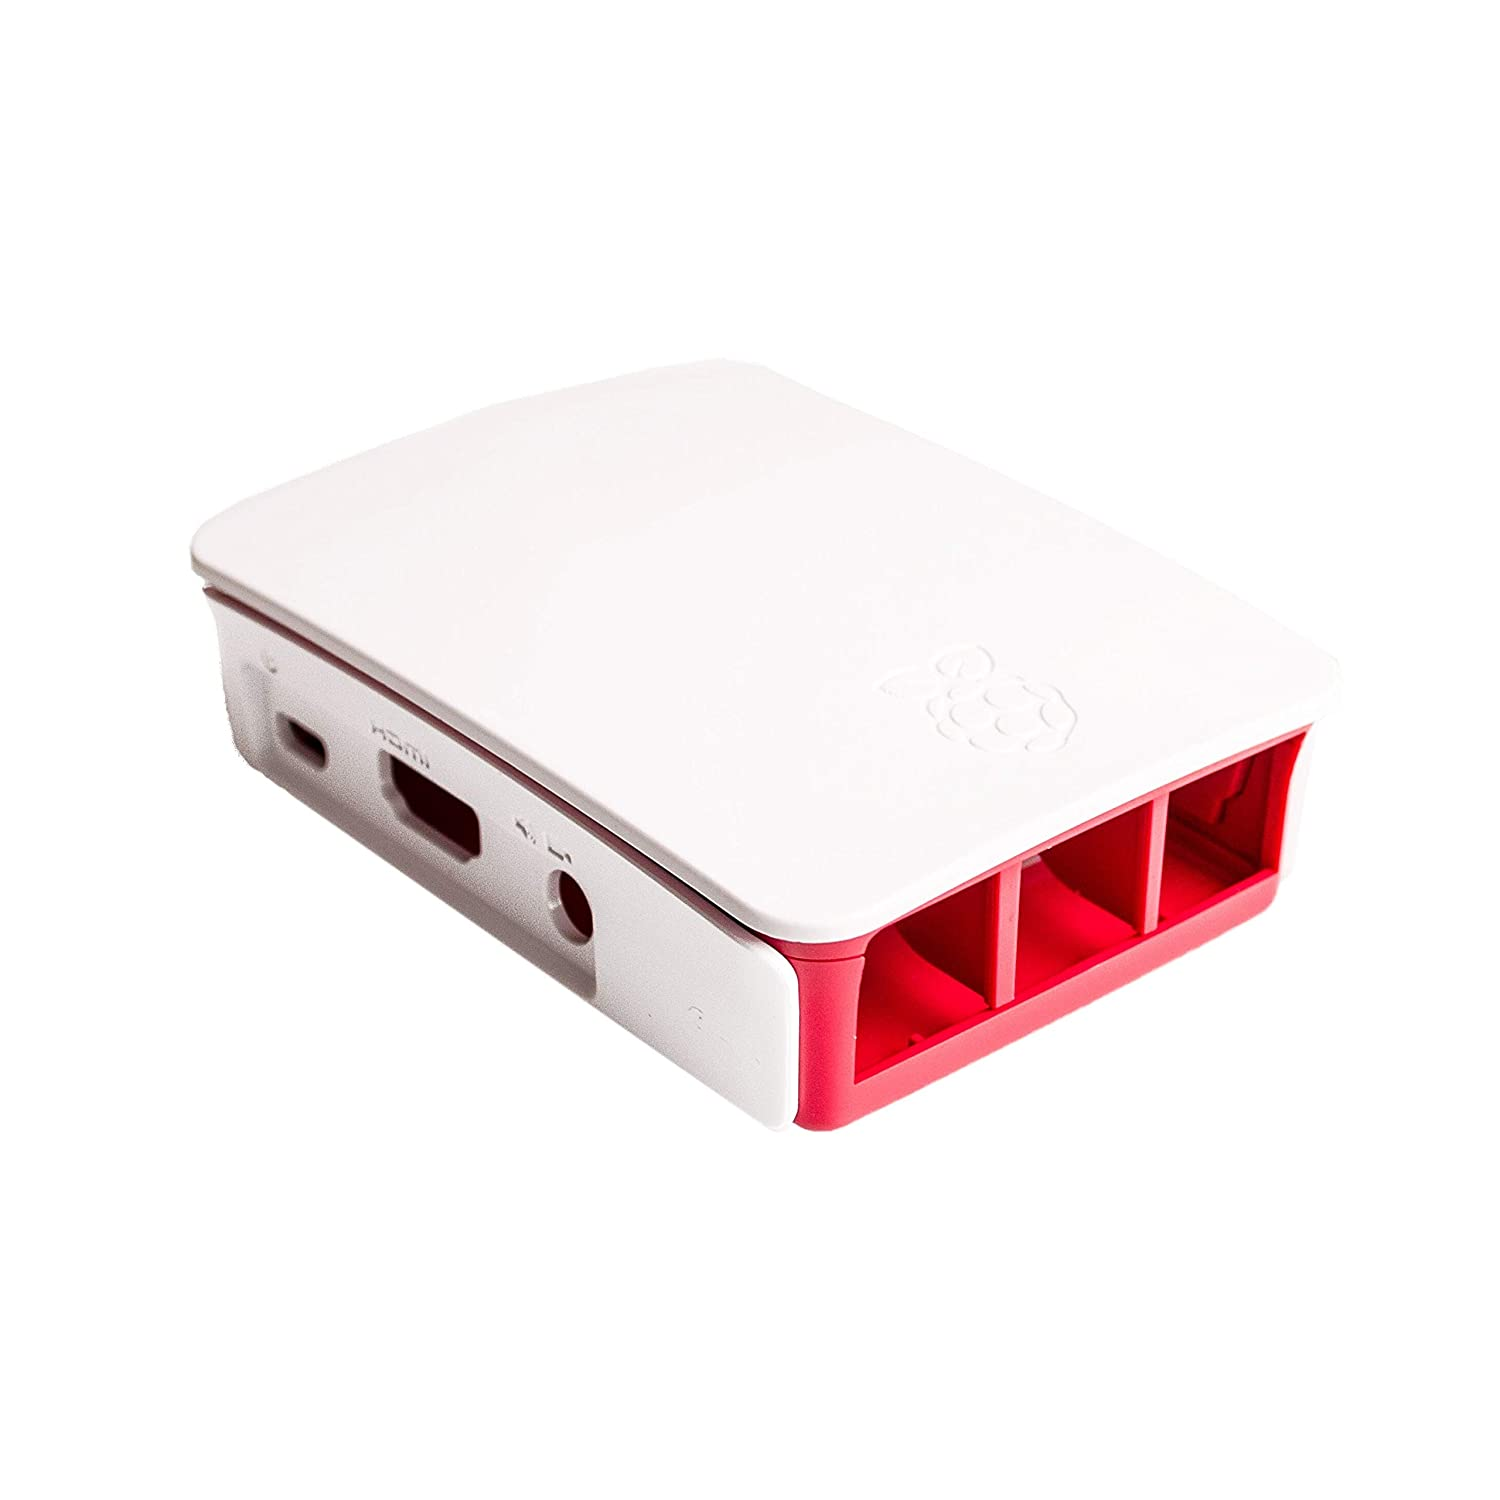 10PCS//LOT Hot Raspberry Pi 3 case Official ABS Enclosure Raspberry pi 2 Box Shell from The Raspberry Pi Foundation